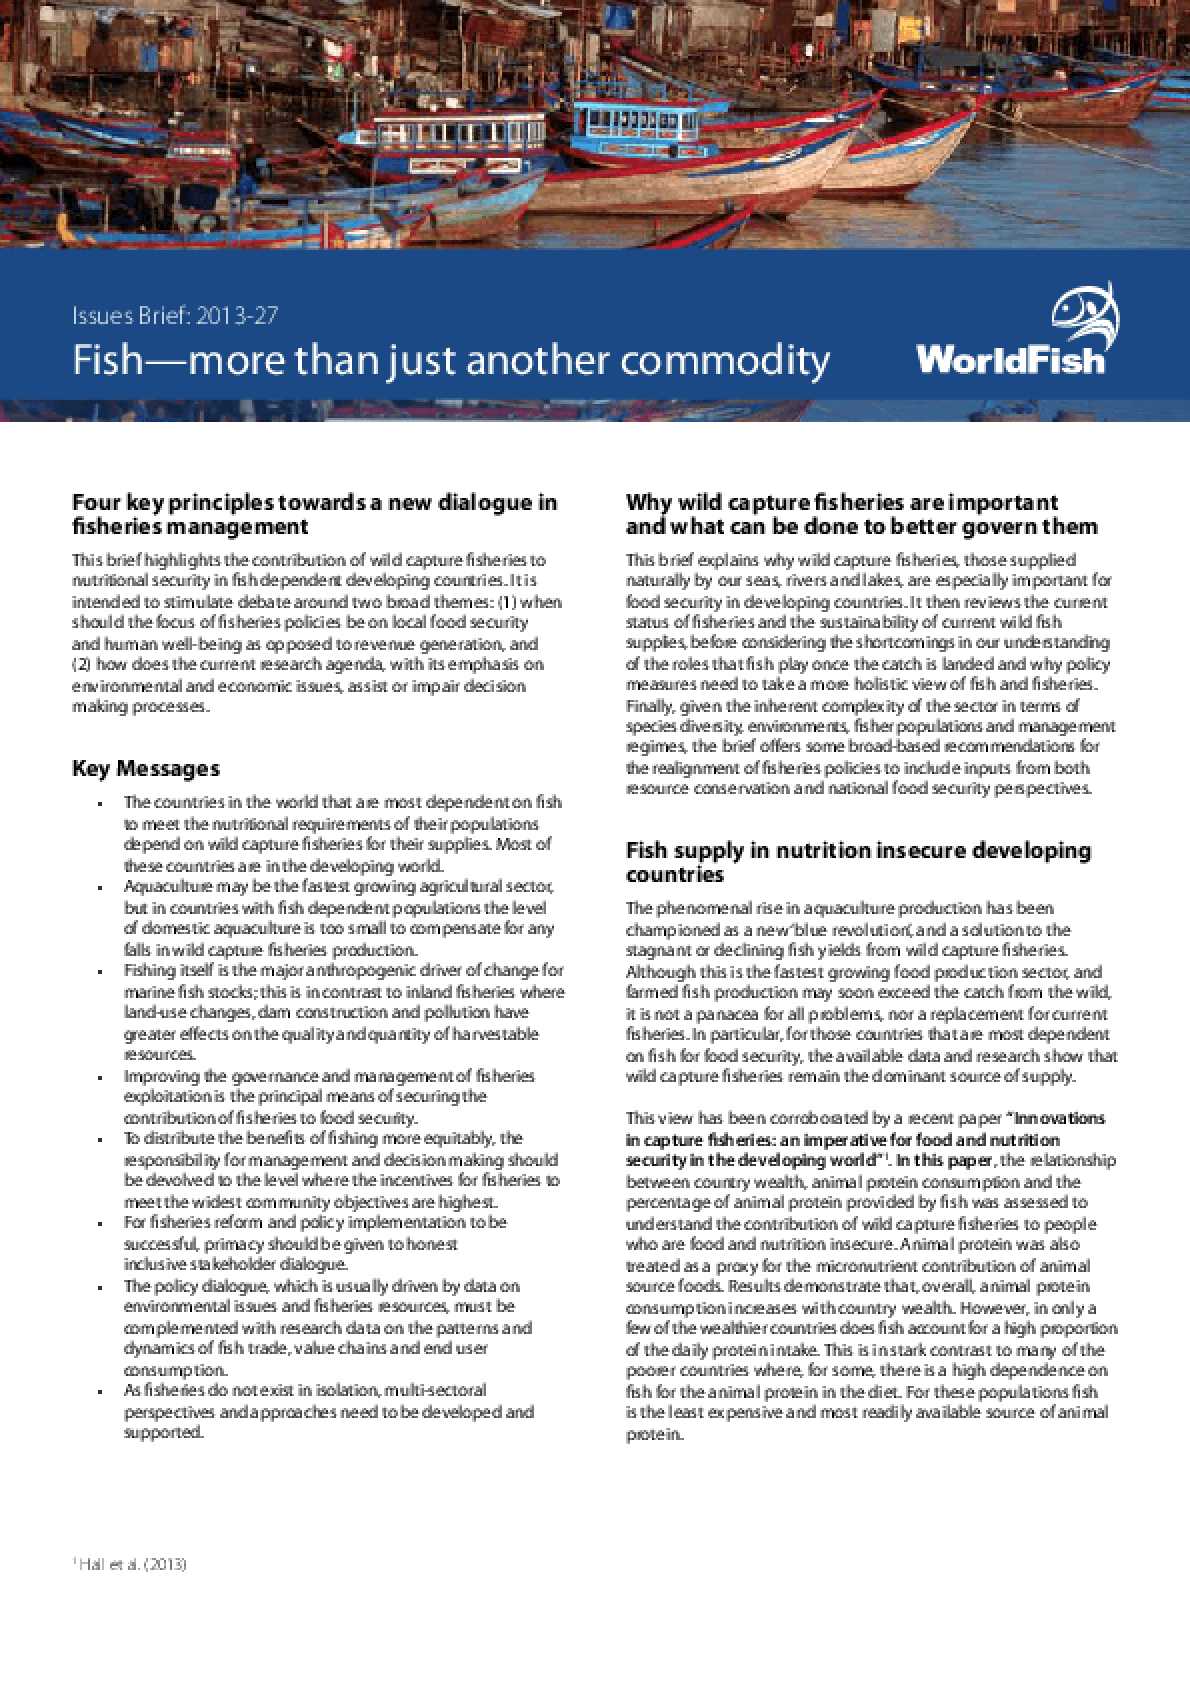 Fish -- More Than Just Another Commodity